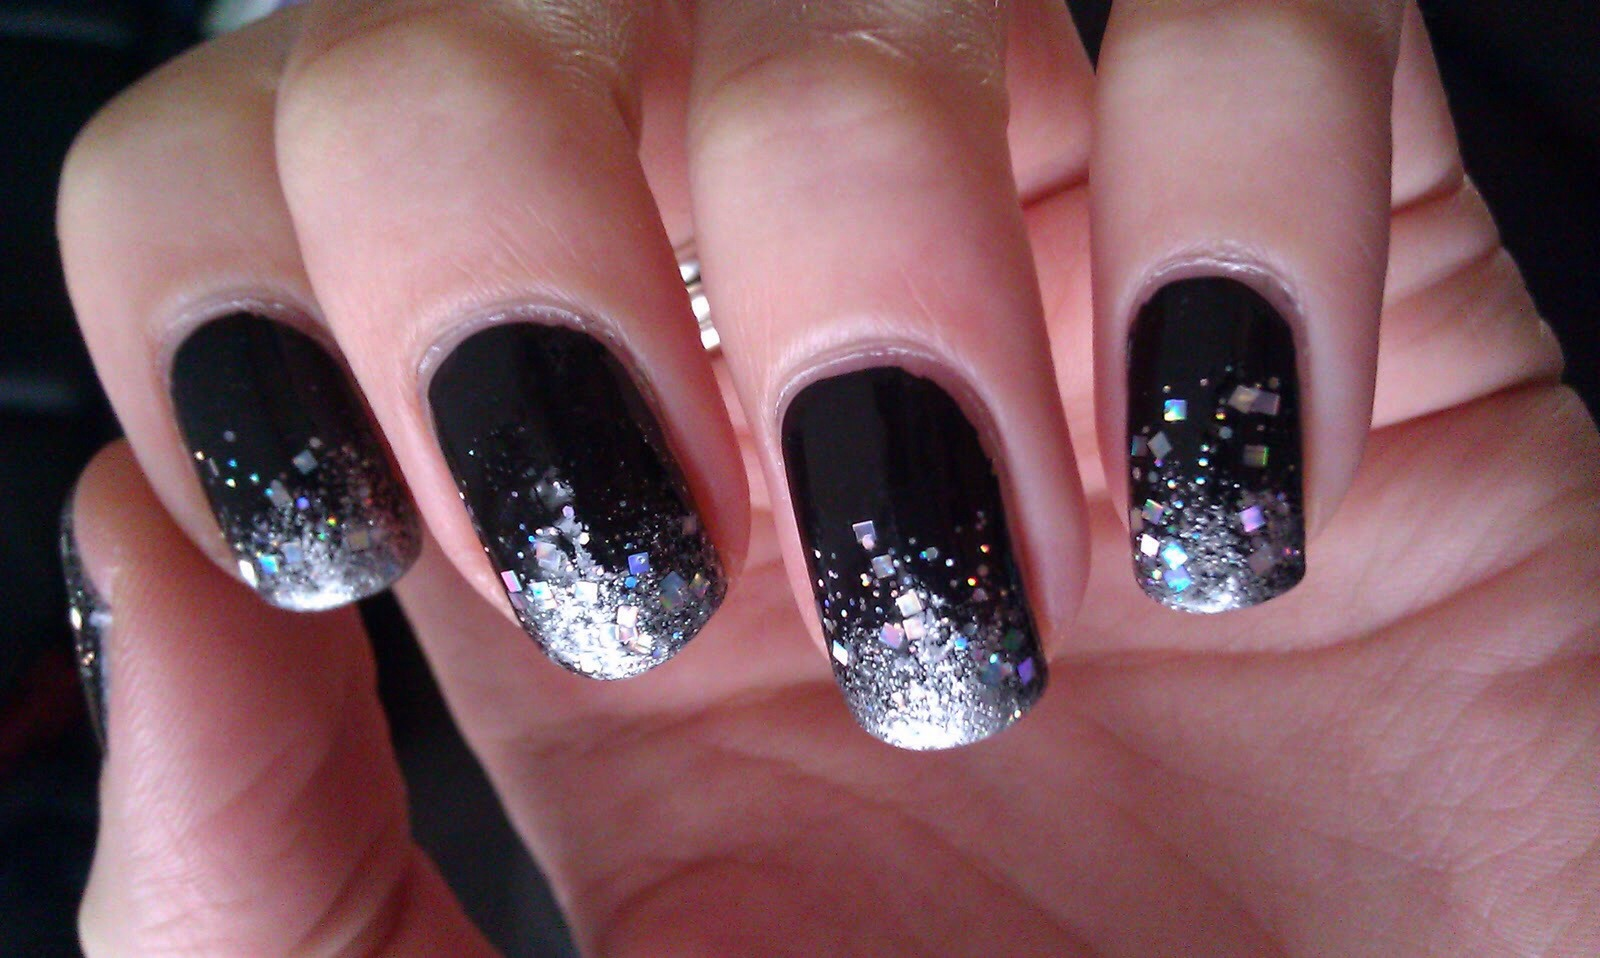 12. If you have chipped nail-polish, add crackle or glitter on top to disguise the look of chipping.